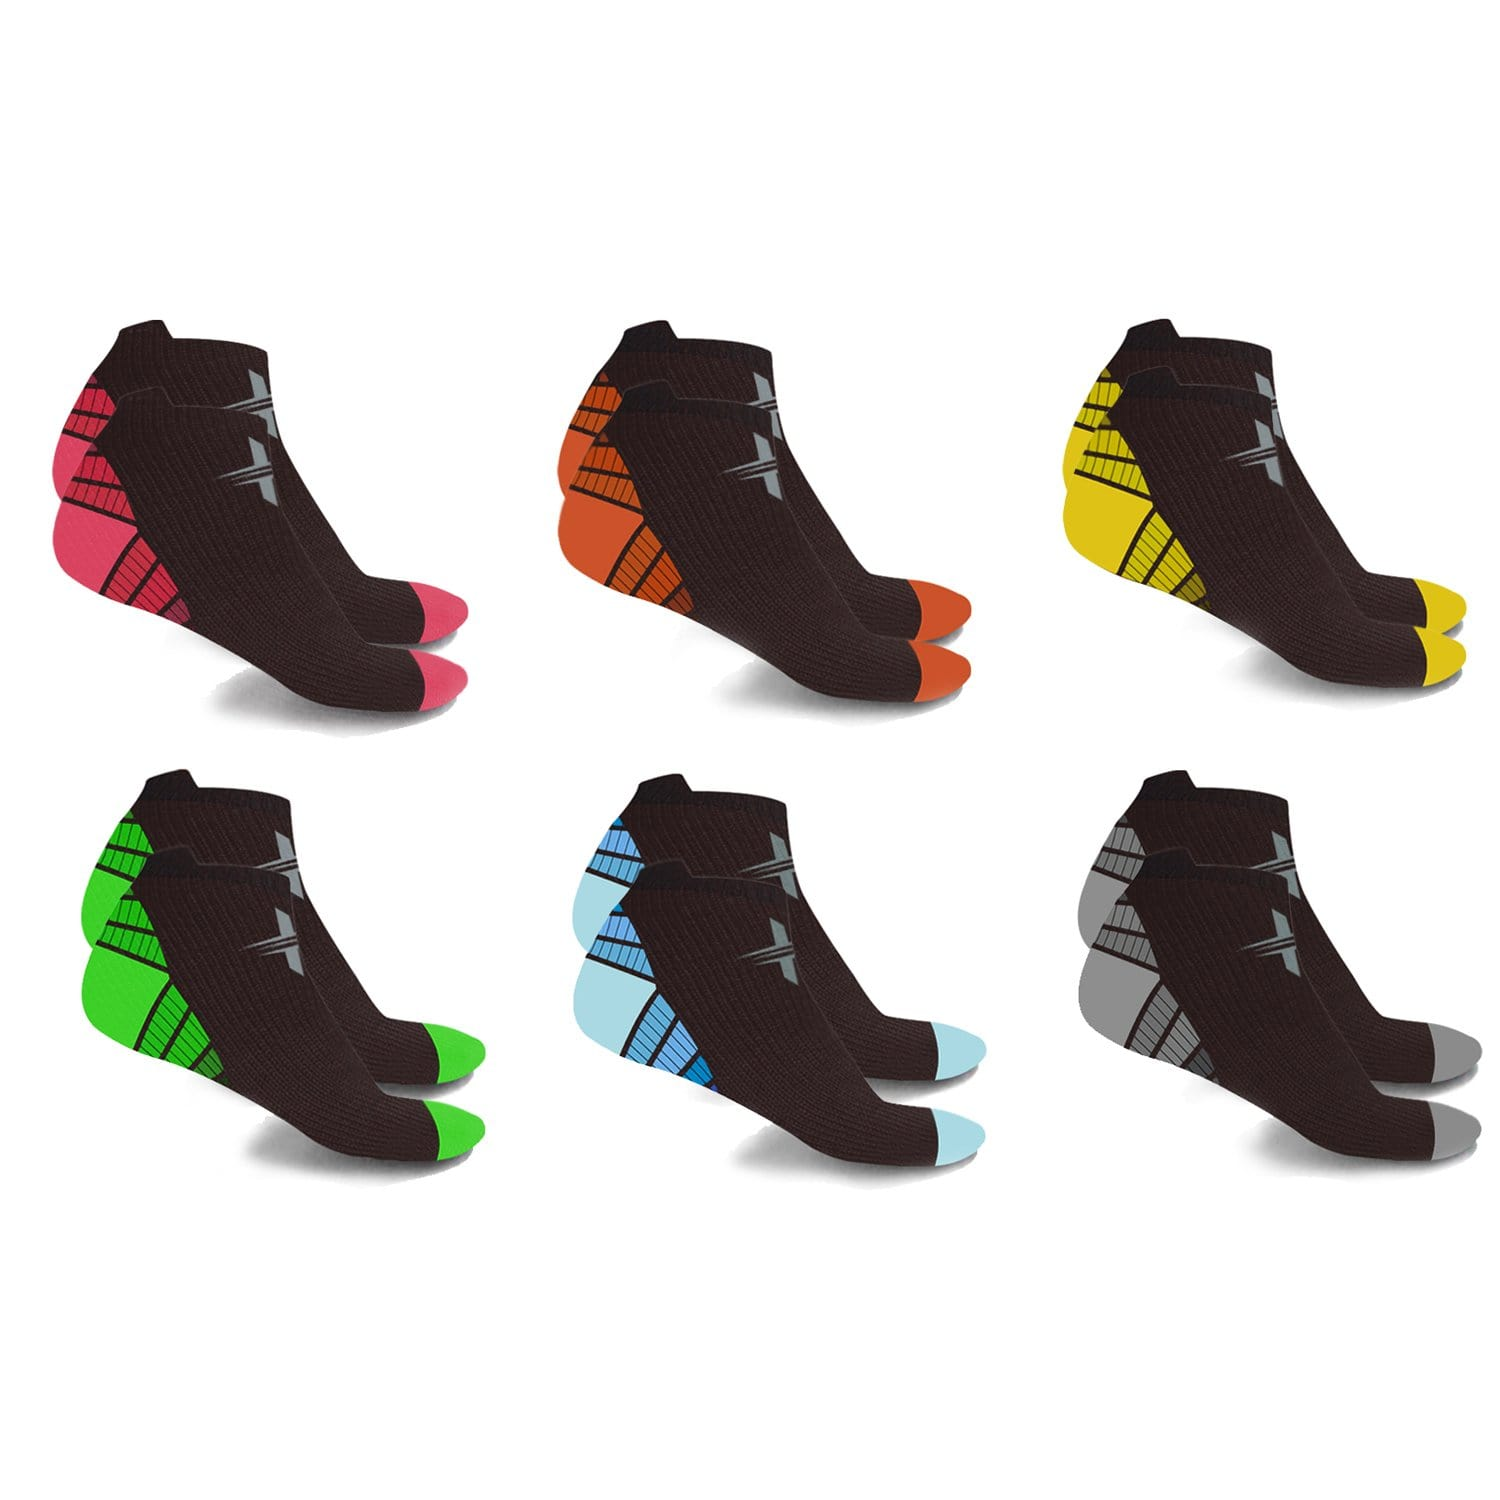 ANKLE-LENGTH SPORTS COMPRESSION SOCKS (6-PAIRS)